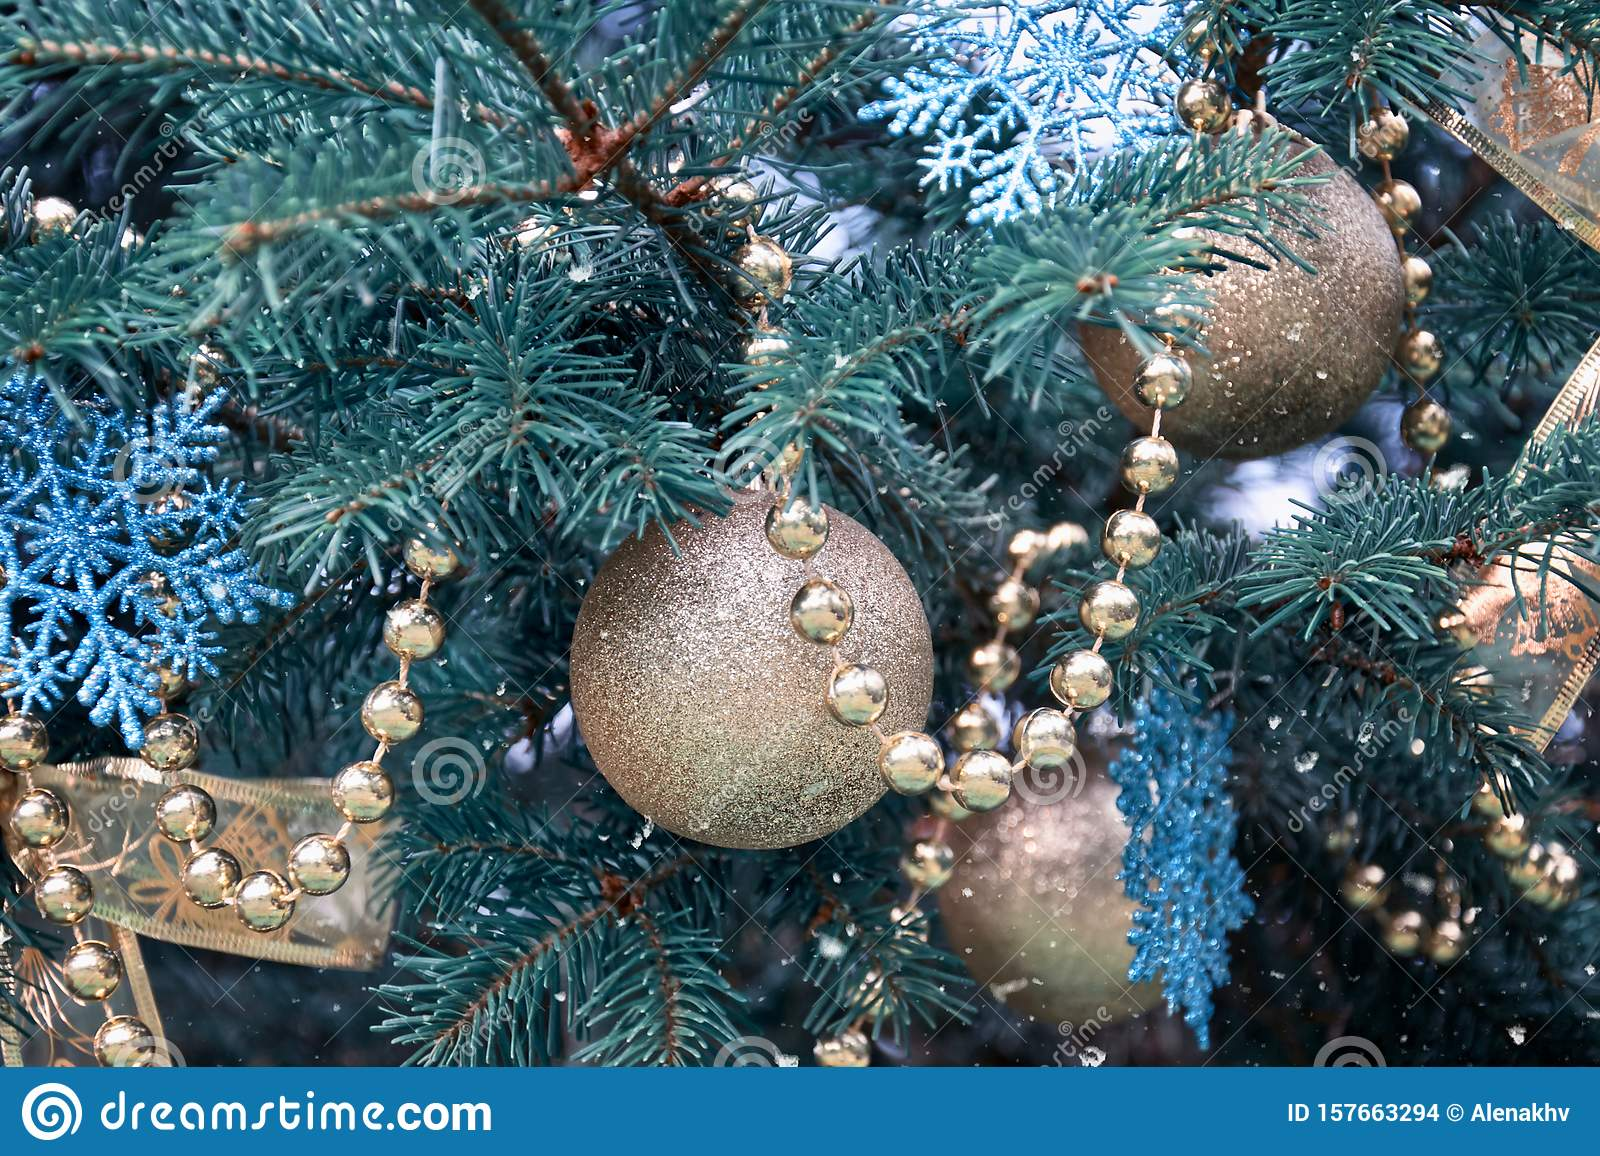 Close Up Of A Christmas Tree With Rose Gold And Turquoise Decorations Balls Snowflakes Bows Beads On A Blurry Background Stock Photo Image Of Color Decor 157663294